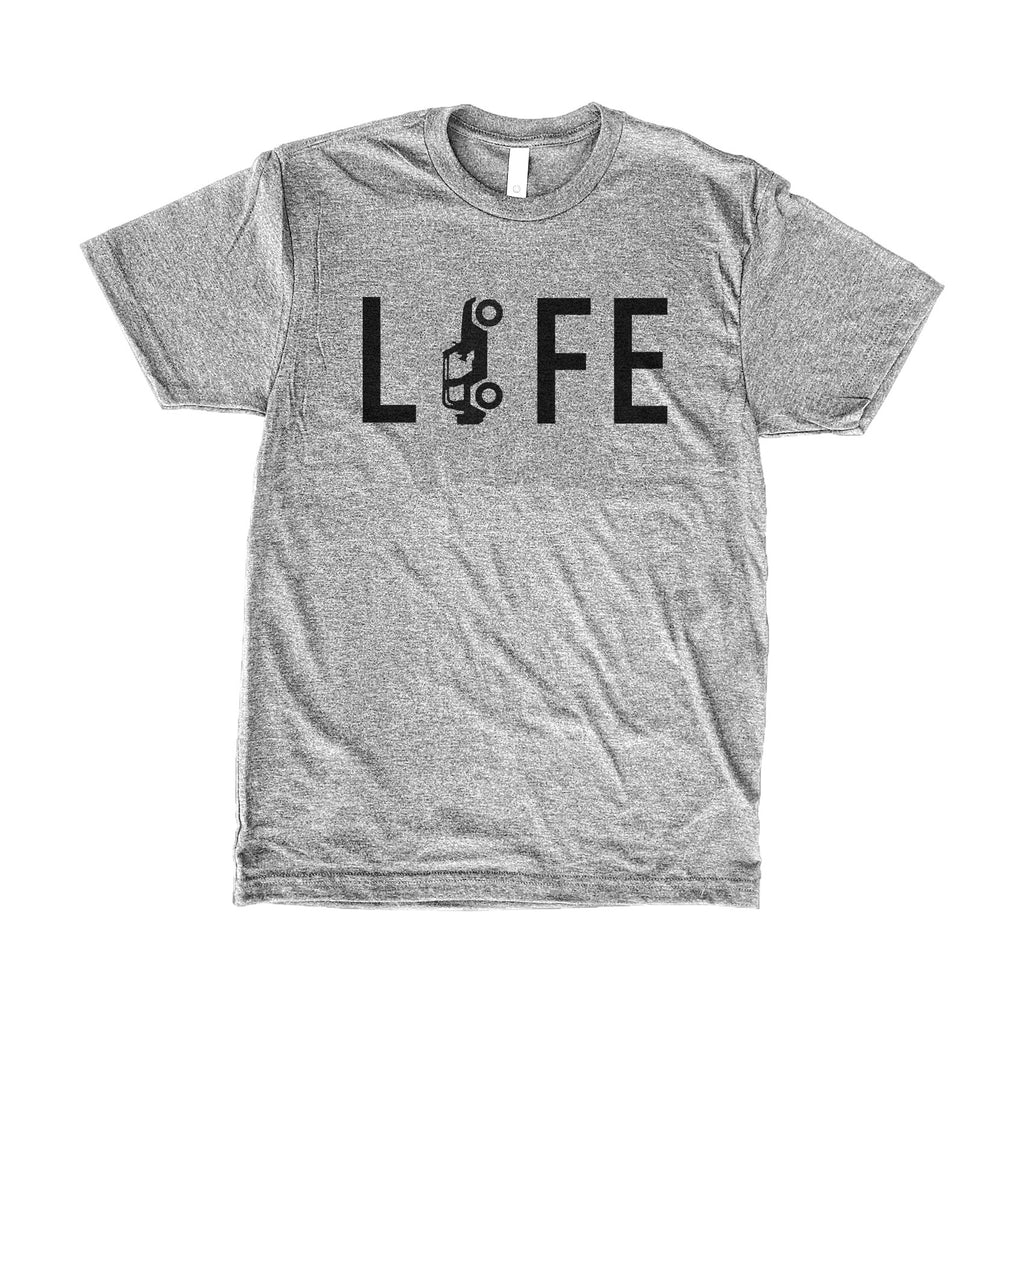 Jeep Life is the best life! This Jeep shirt for men and women is the perfect gift for a jeep lover in your life!